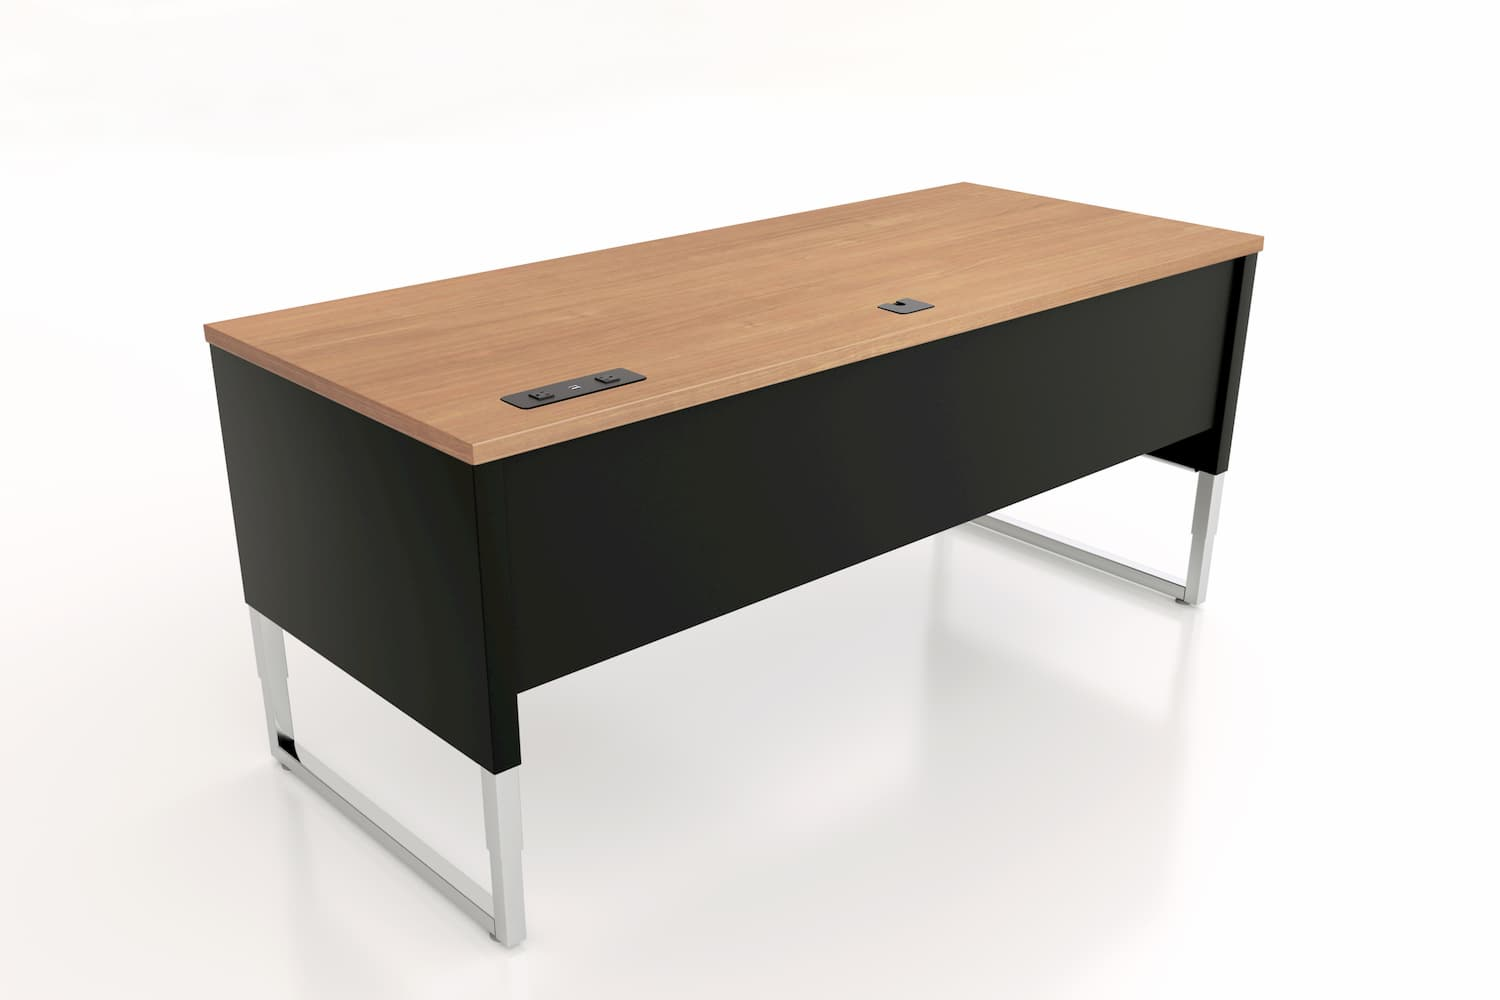 Advent-Desk-ADV-7230-BK-Custom-Top-9-Back